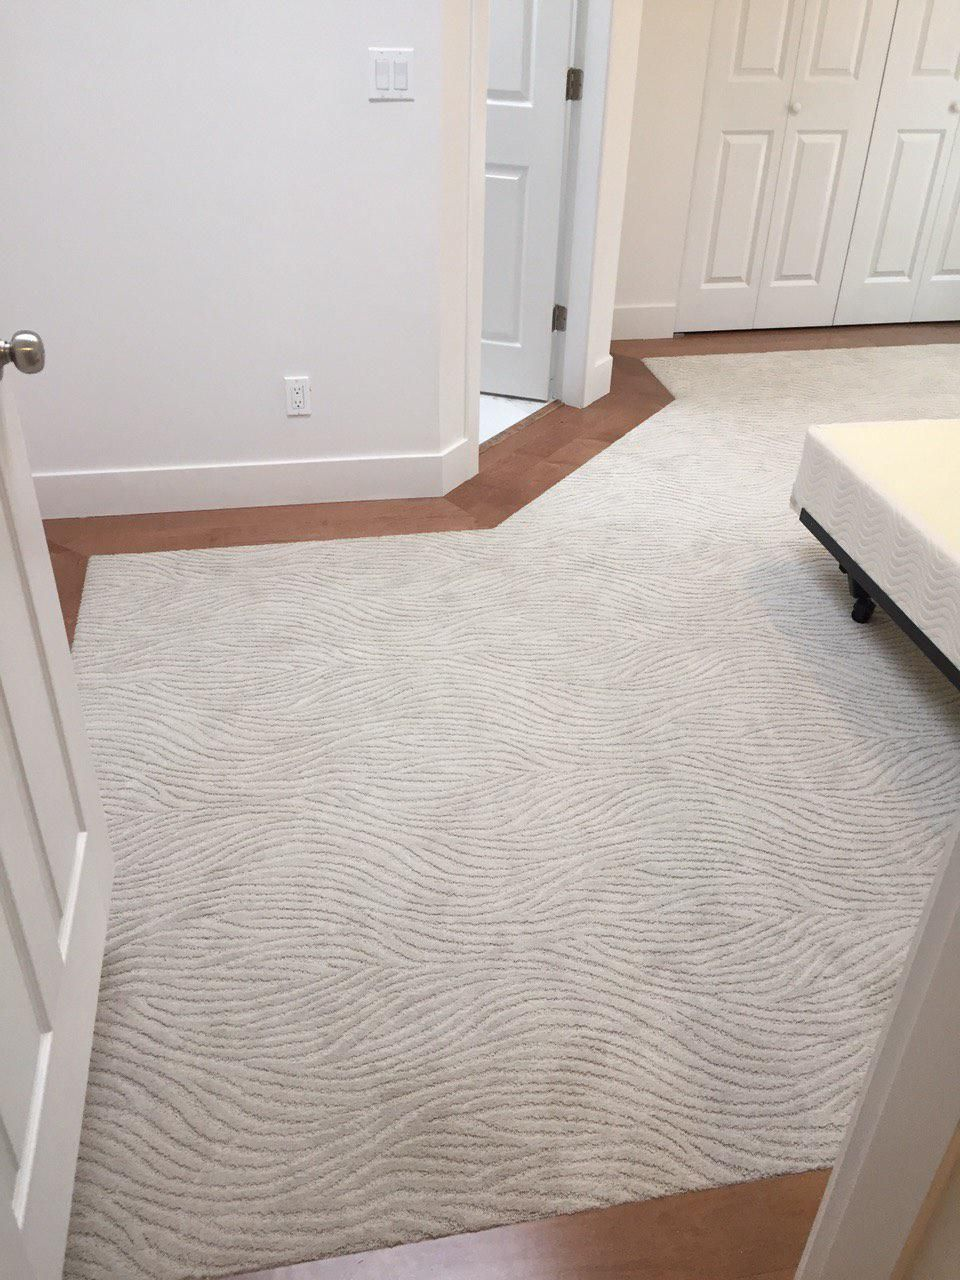 Mohawk dramatic flair in hushed beige carpet maple hardwood floor mohawk dramatic flair in hushed beige carpet maple hardwood floor border master bedroom renovation baanklon Choice Image